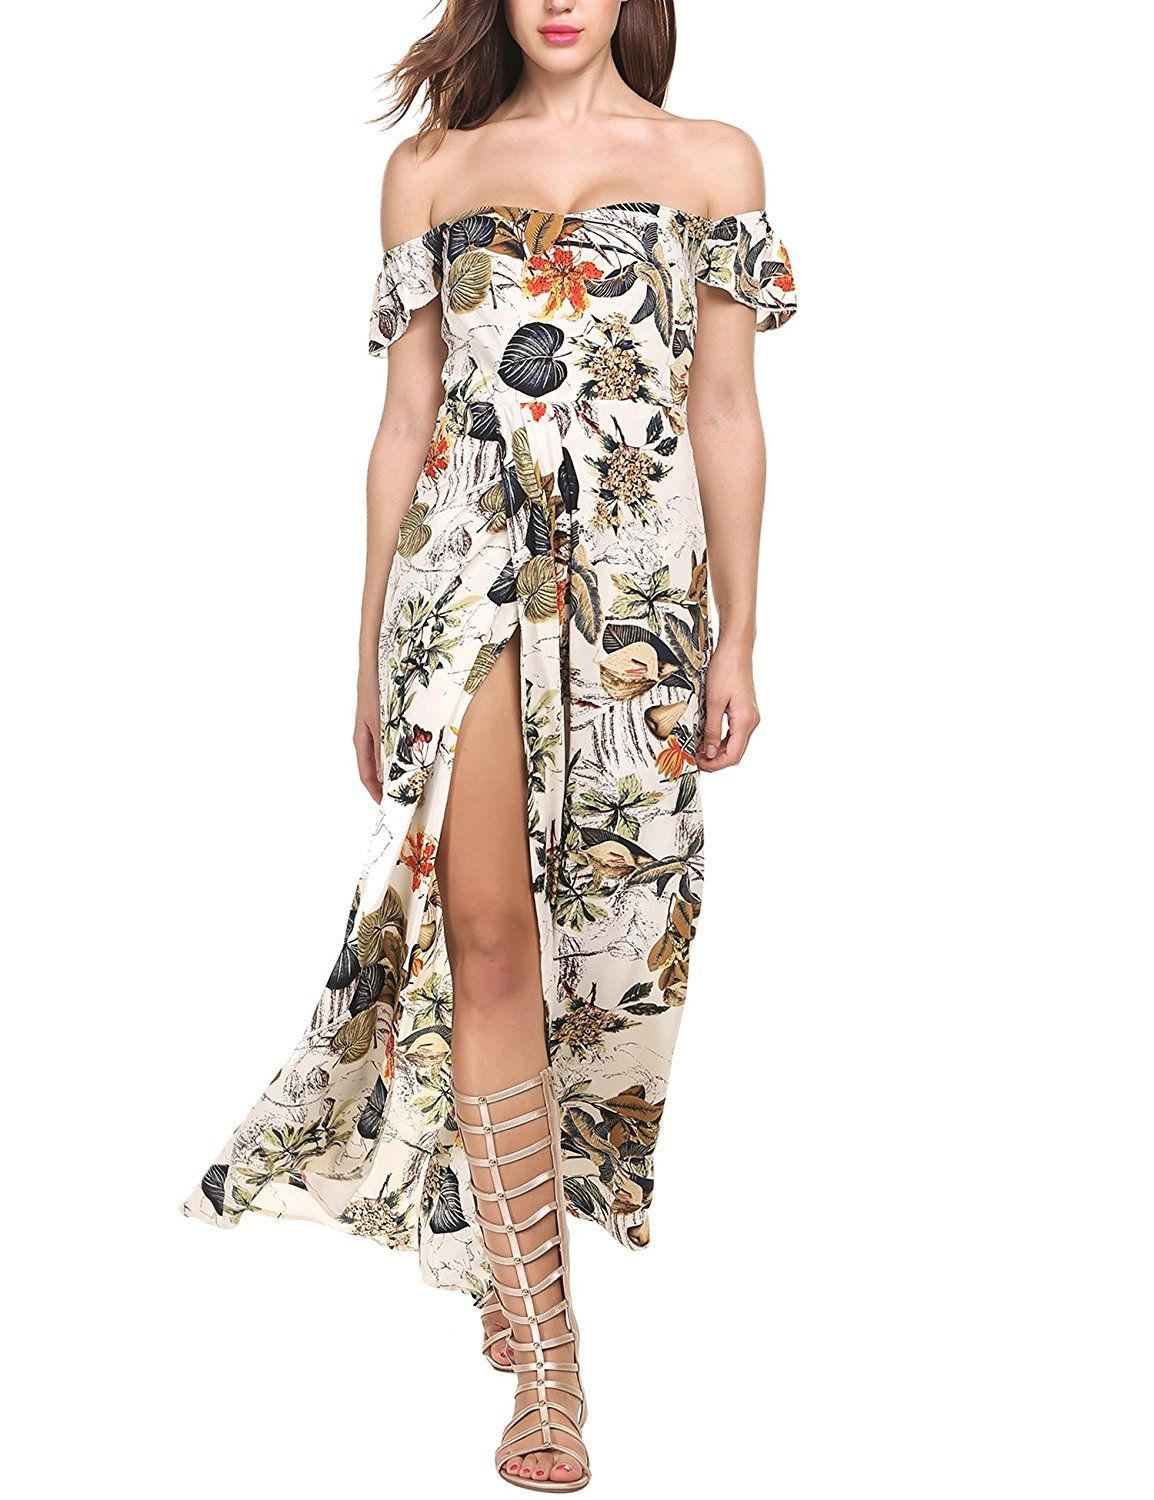 bb49473f79c8 Meaneor Women Multicolor Floral Off The Shoulder Backless Split Maxi Beach  Dress at Amazon Women s Clothing store